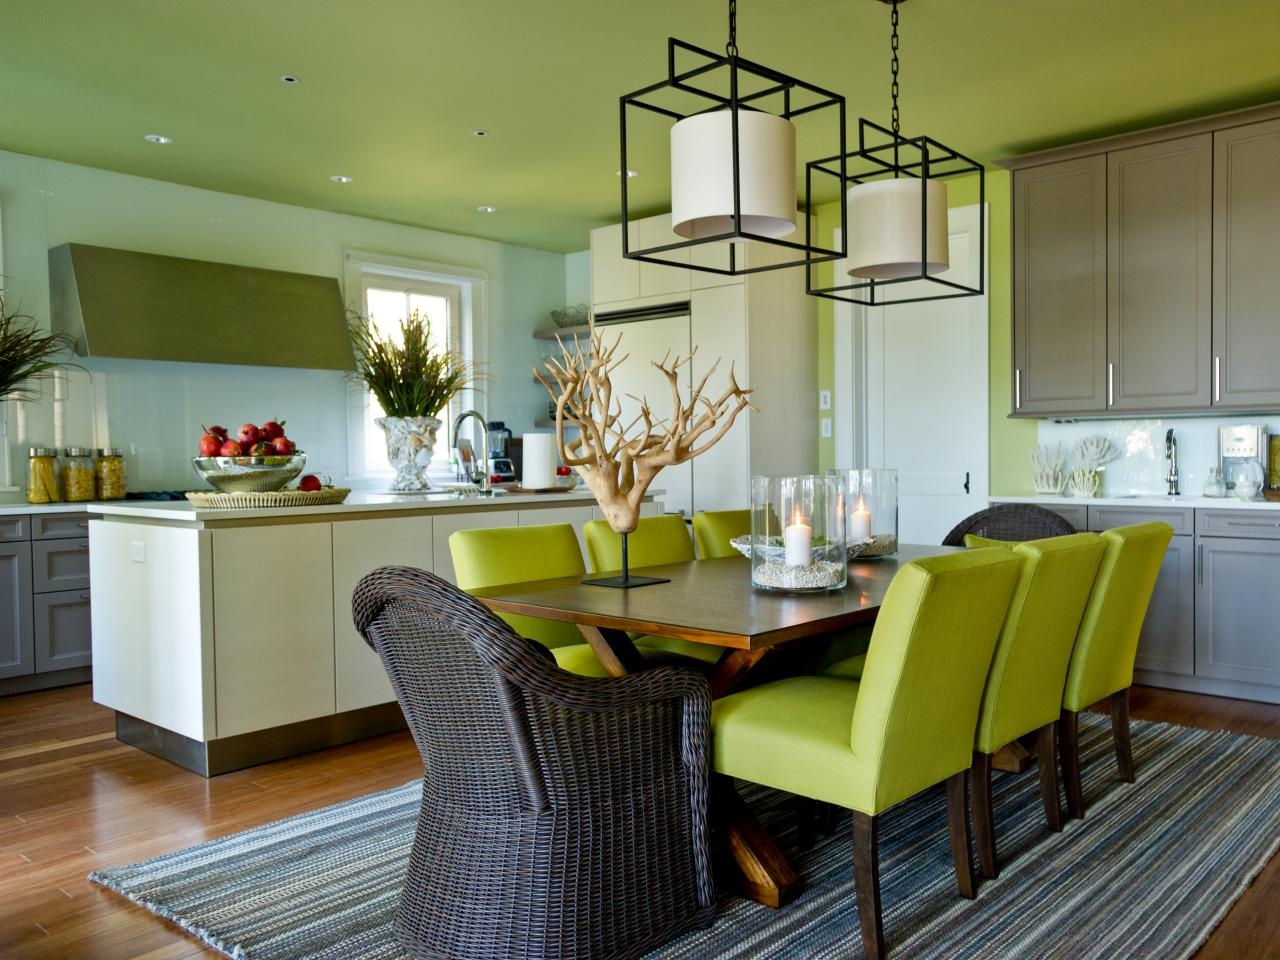 Dining room from hgtv dream home 2013 pictures and video for Dining room ideas 2013